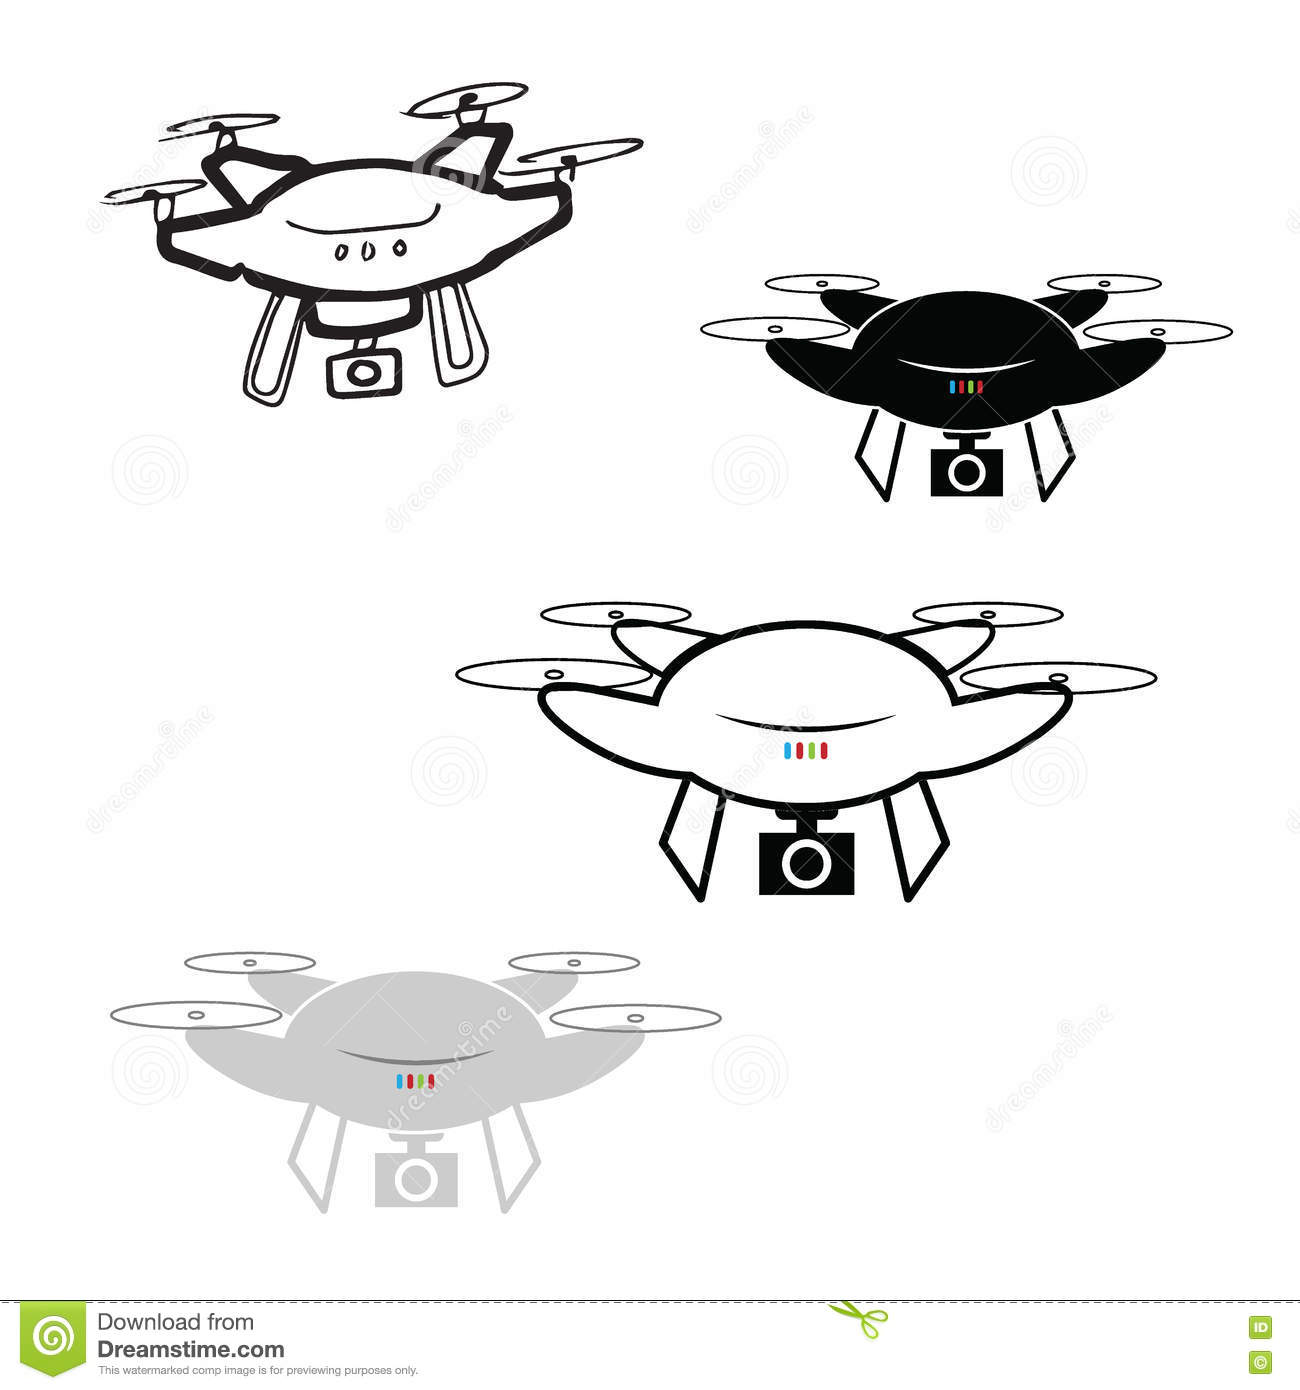 Drone Quadcopter With Camera Icons Stock Vector